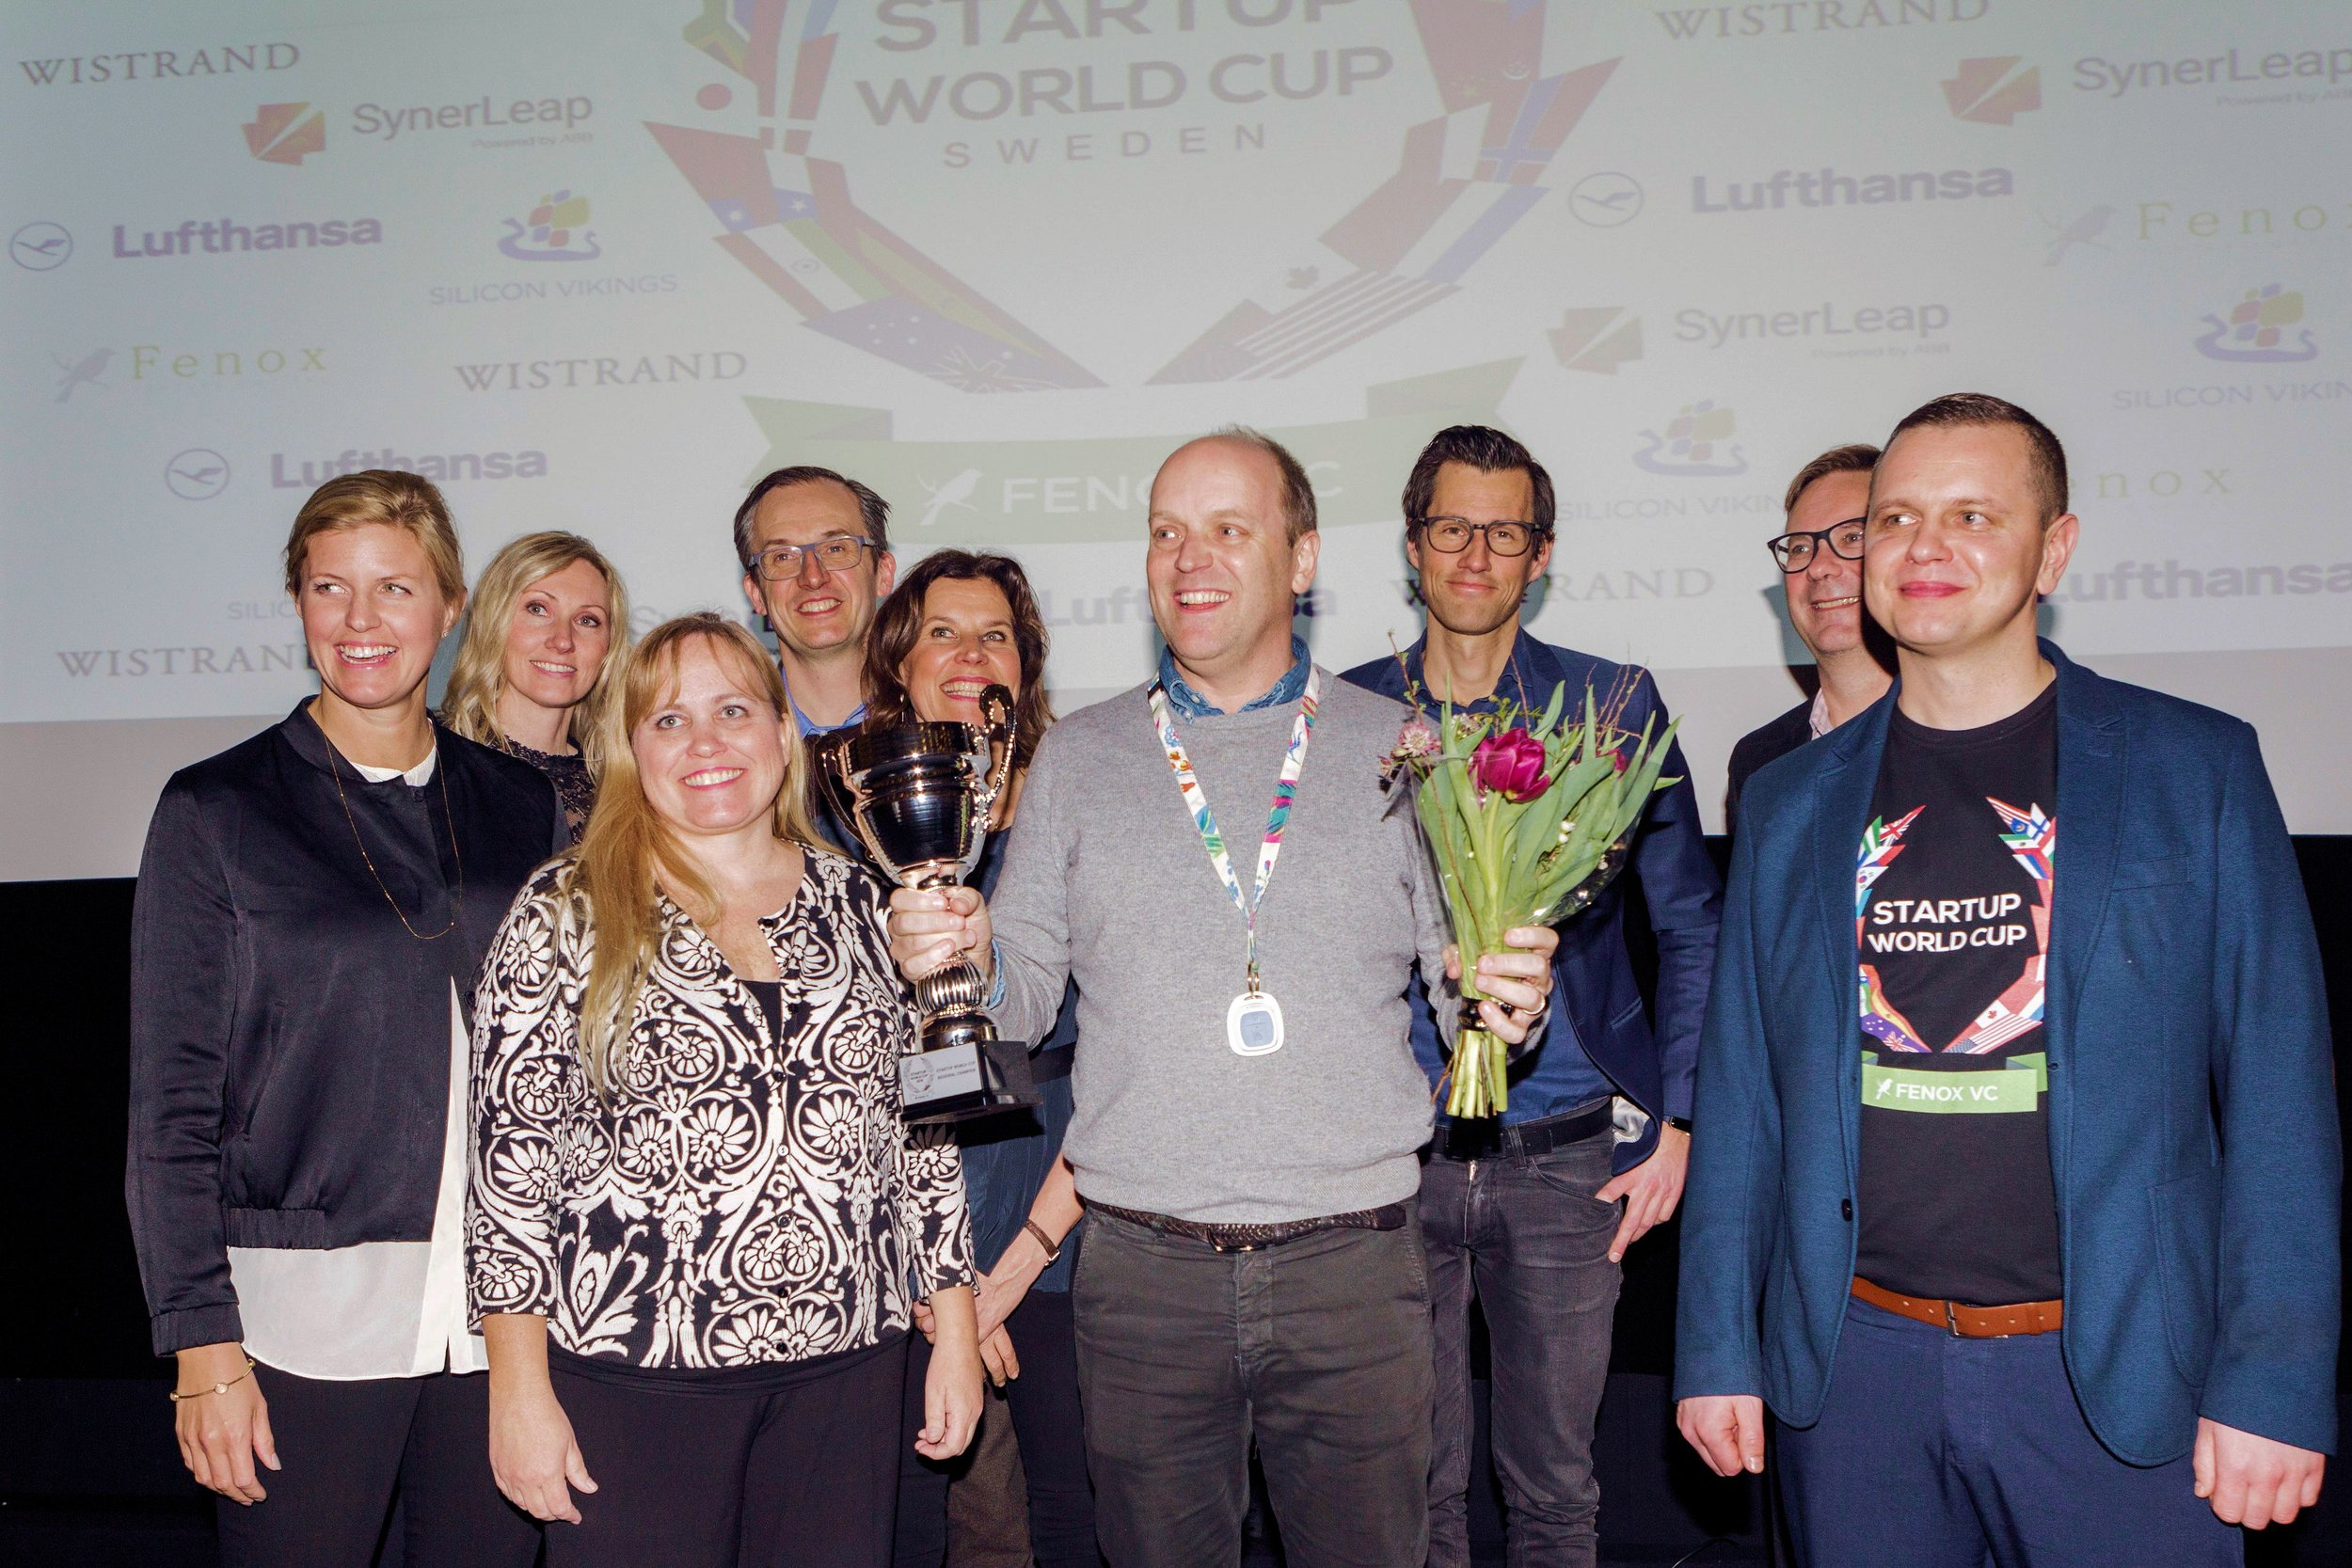 Charlotte Danielsson pictured here with the winner of the Swedish national final of the Silicon Vikings Startup World Cup Competition that she organized